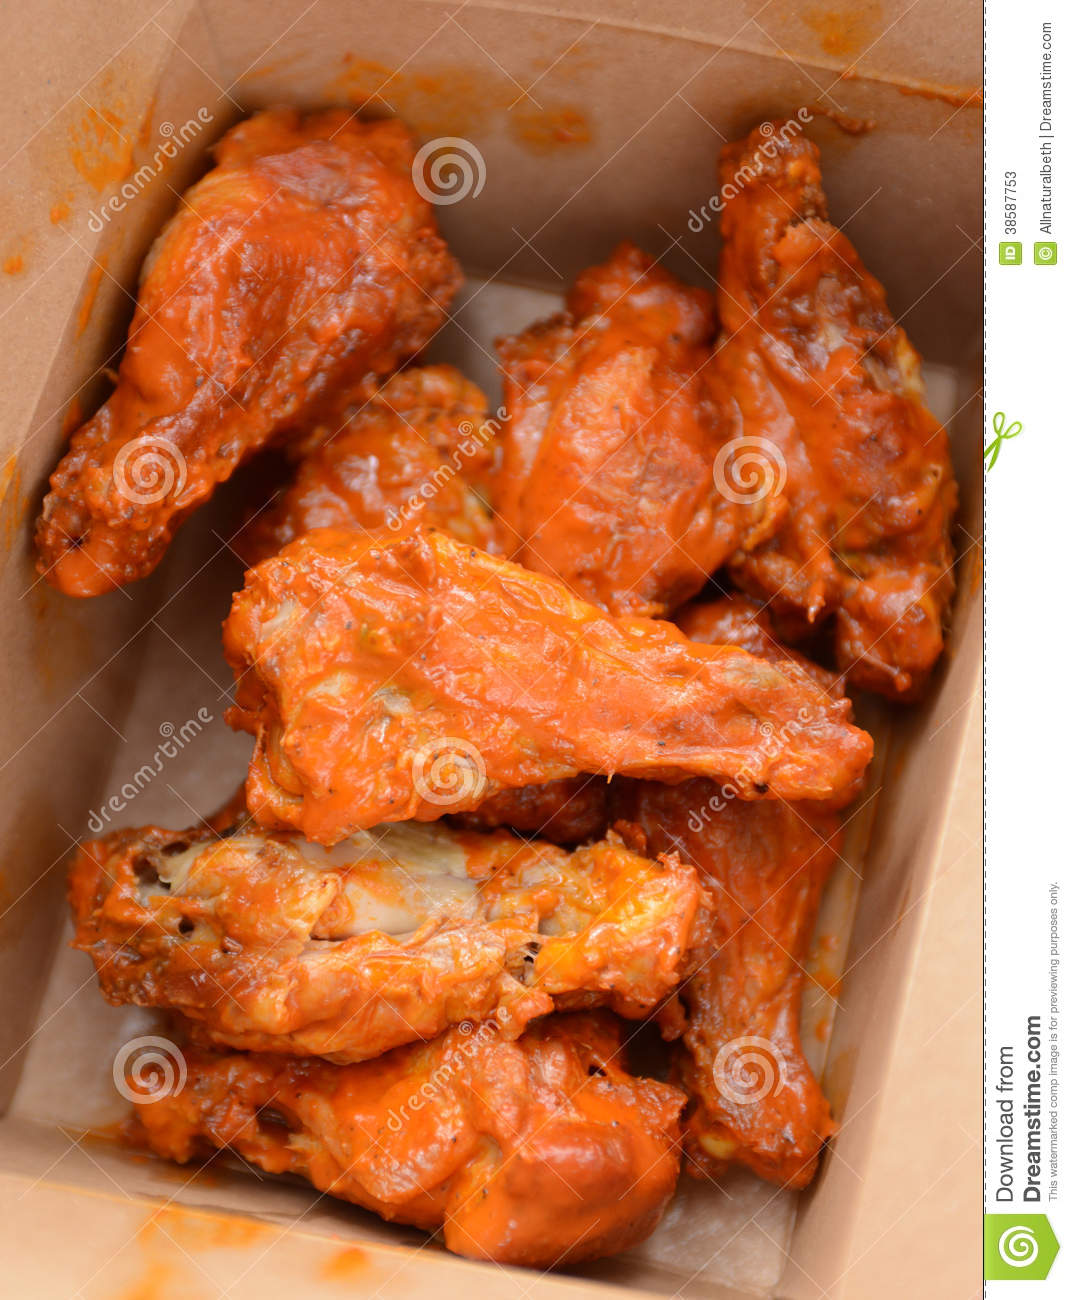 Greasy Buffalo Chicken Wings Stock Photos - Image: 38587753